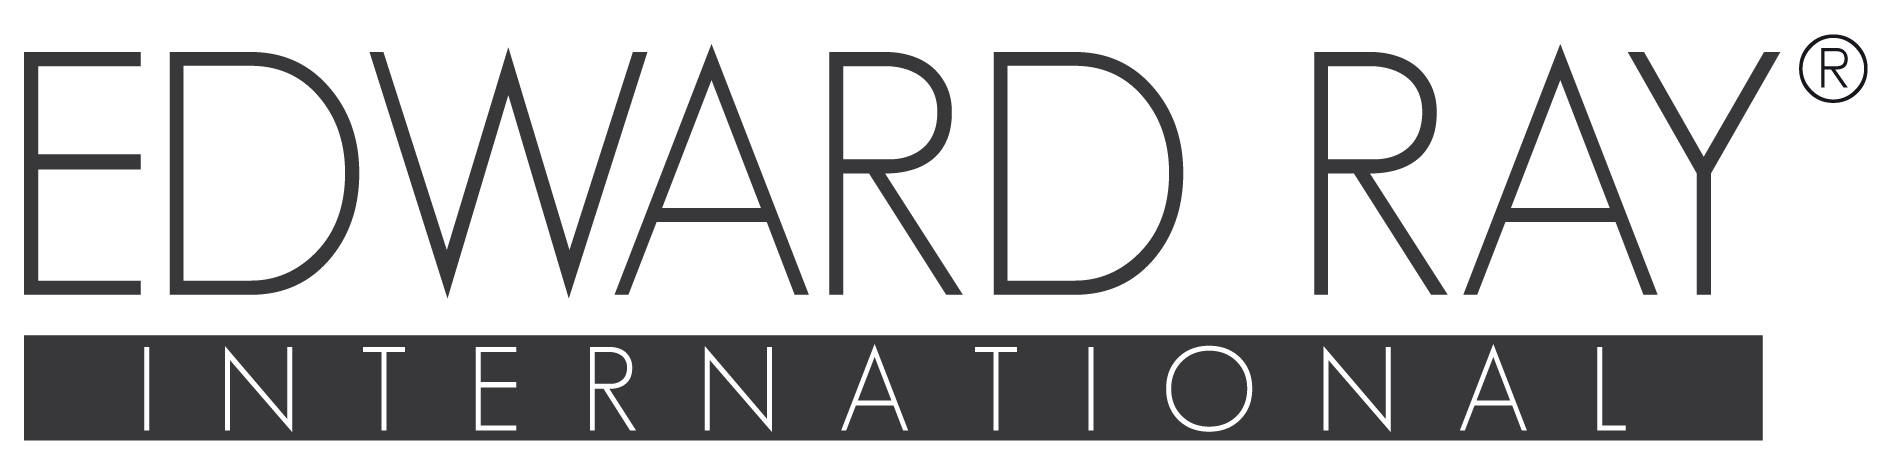 Edward Ray International Logo